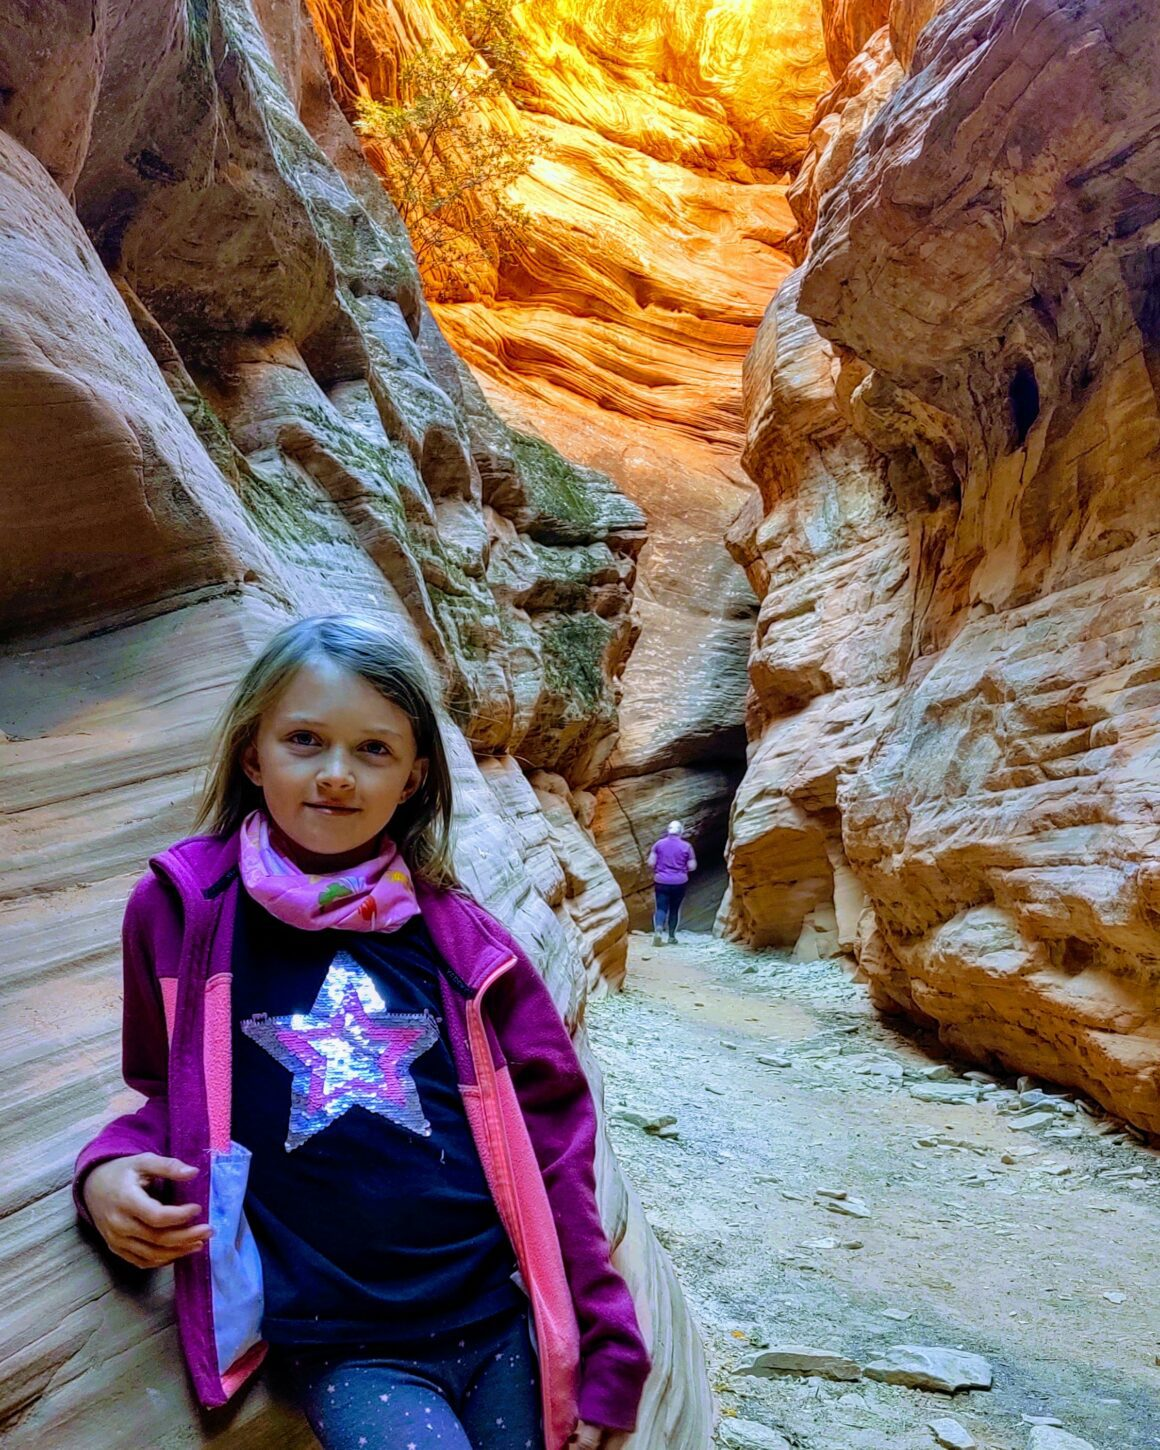 Family friendly alternate to Antelope Canyon.